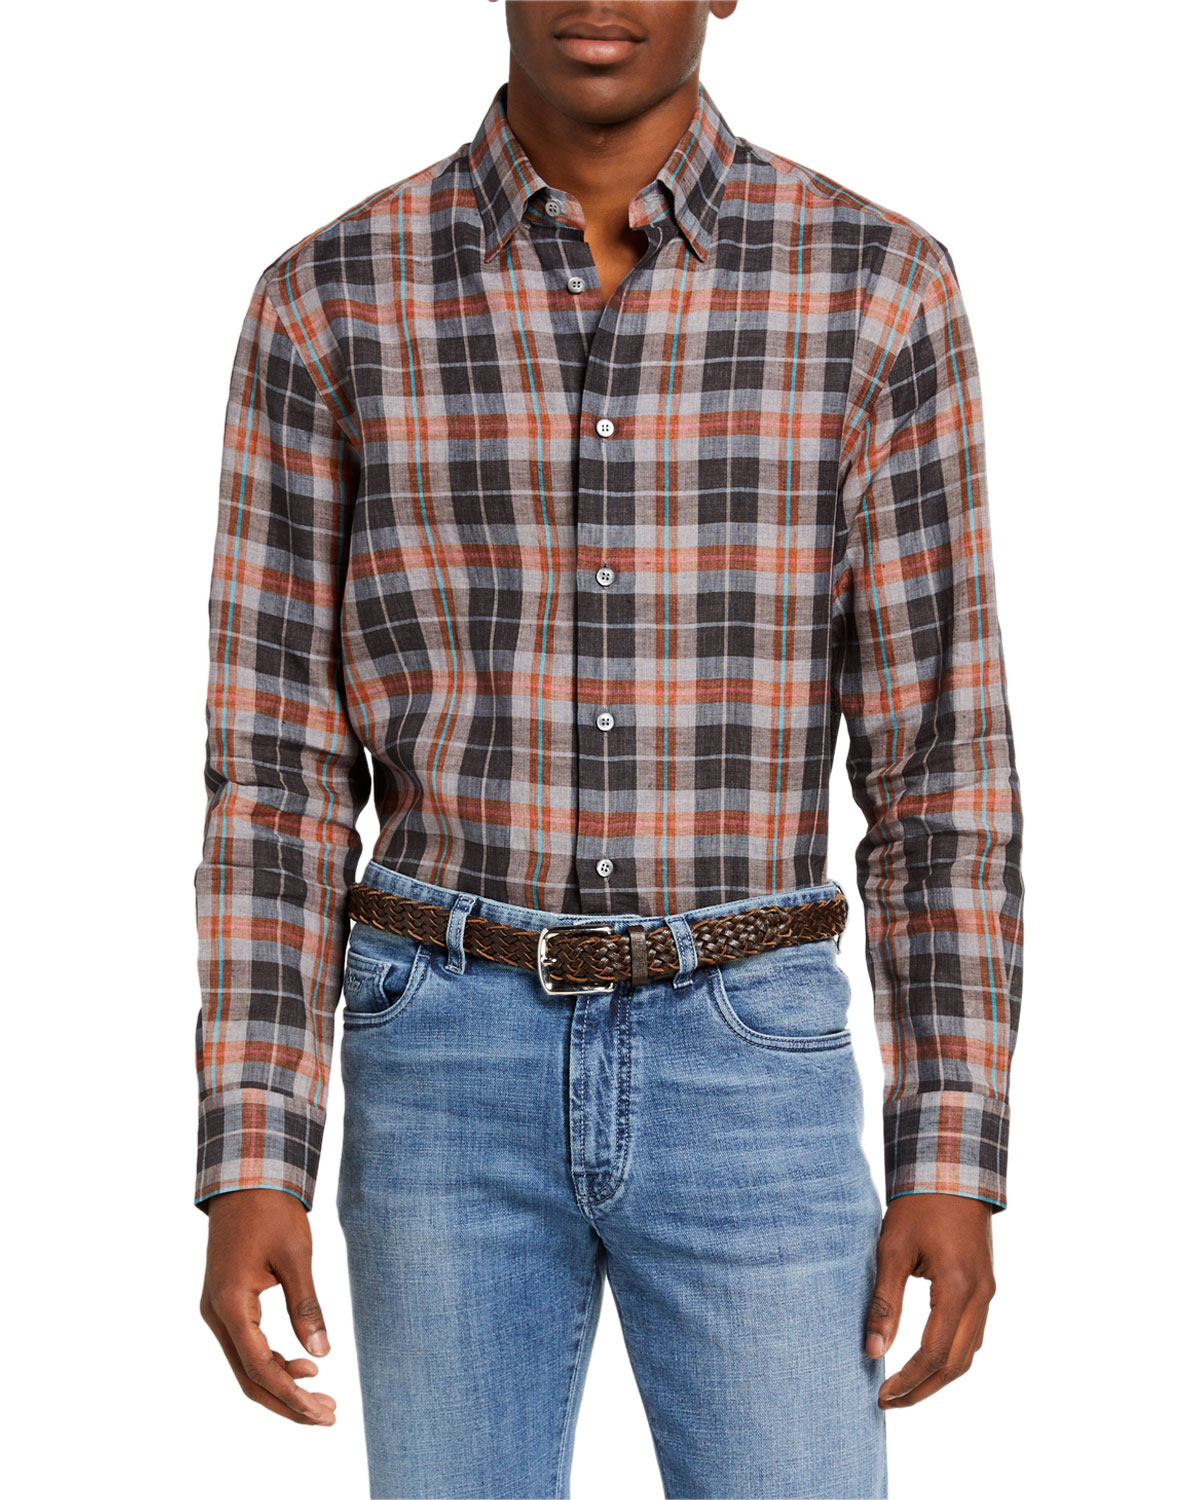 Brioni Men's Madras Plaid Linen Sport Shirt